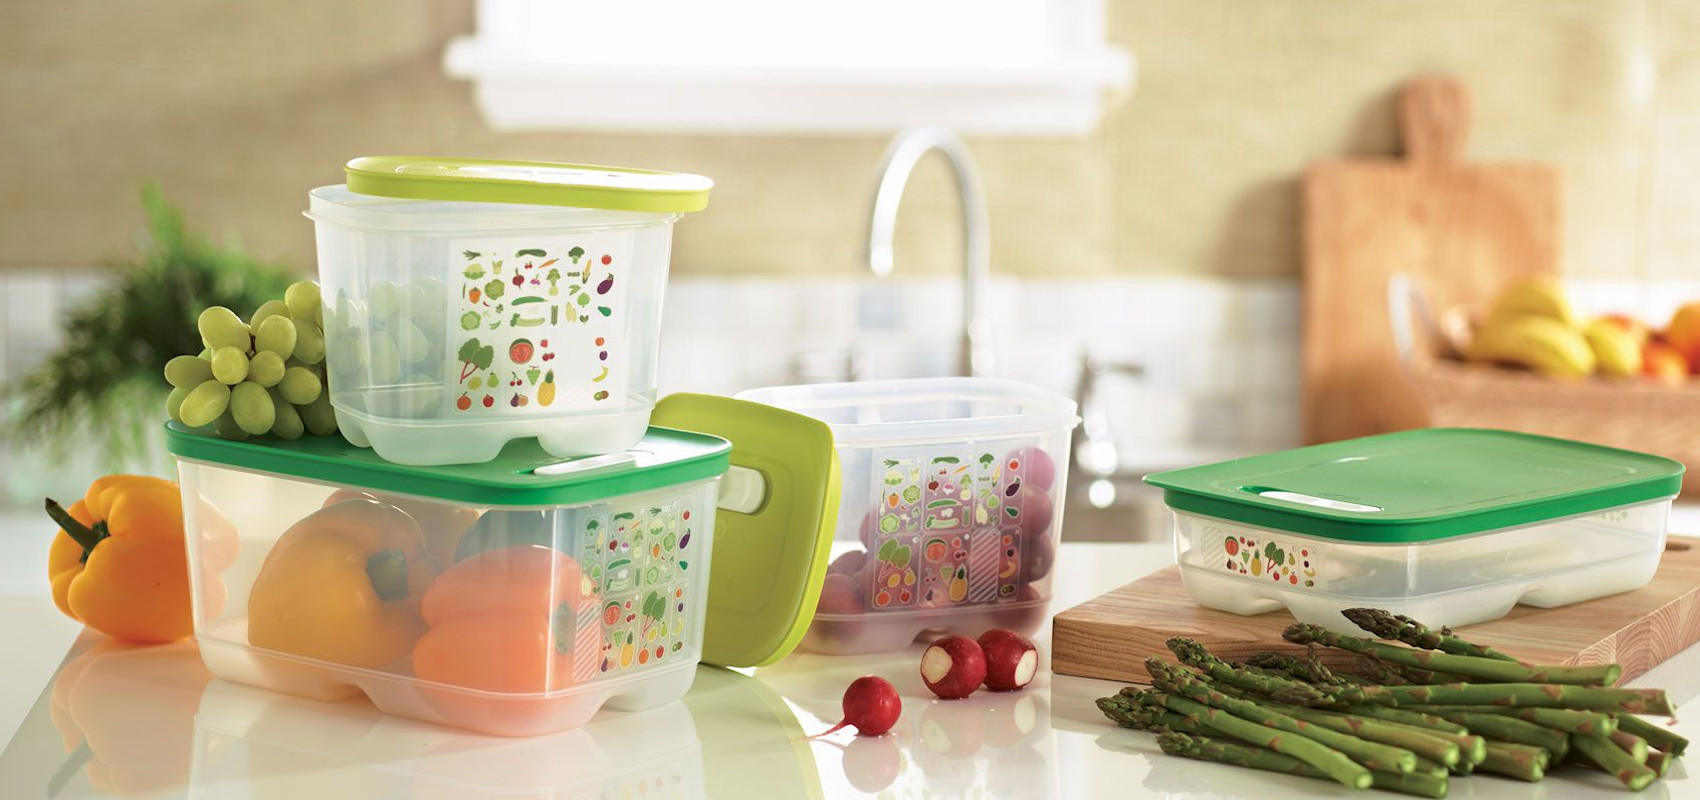 Tupperware offres special